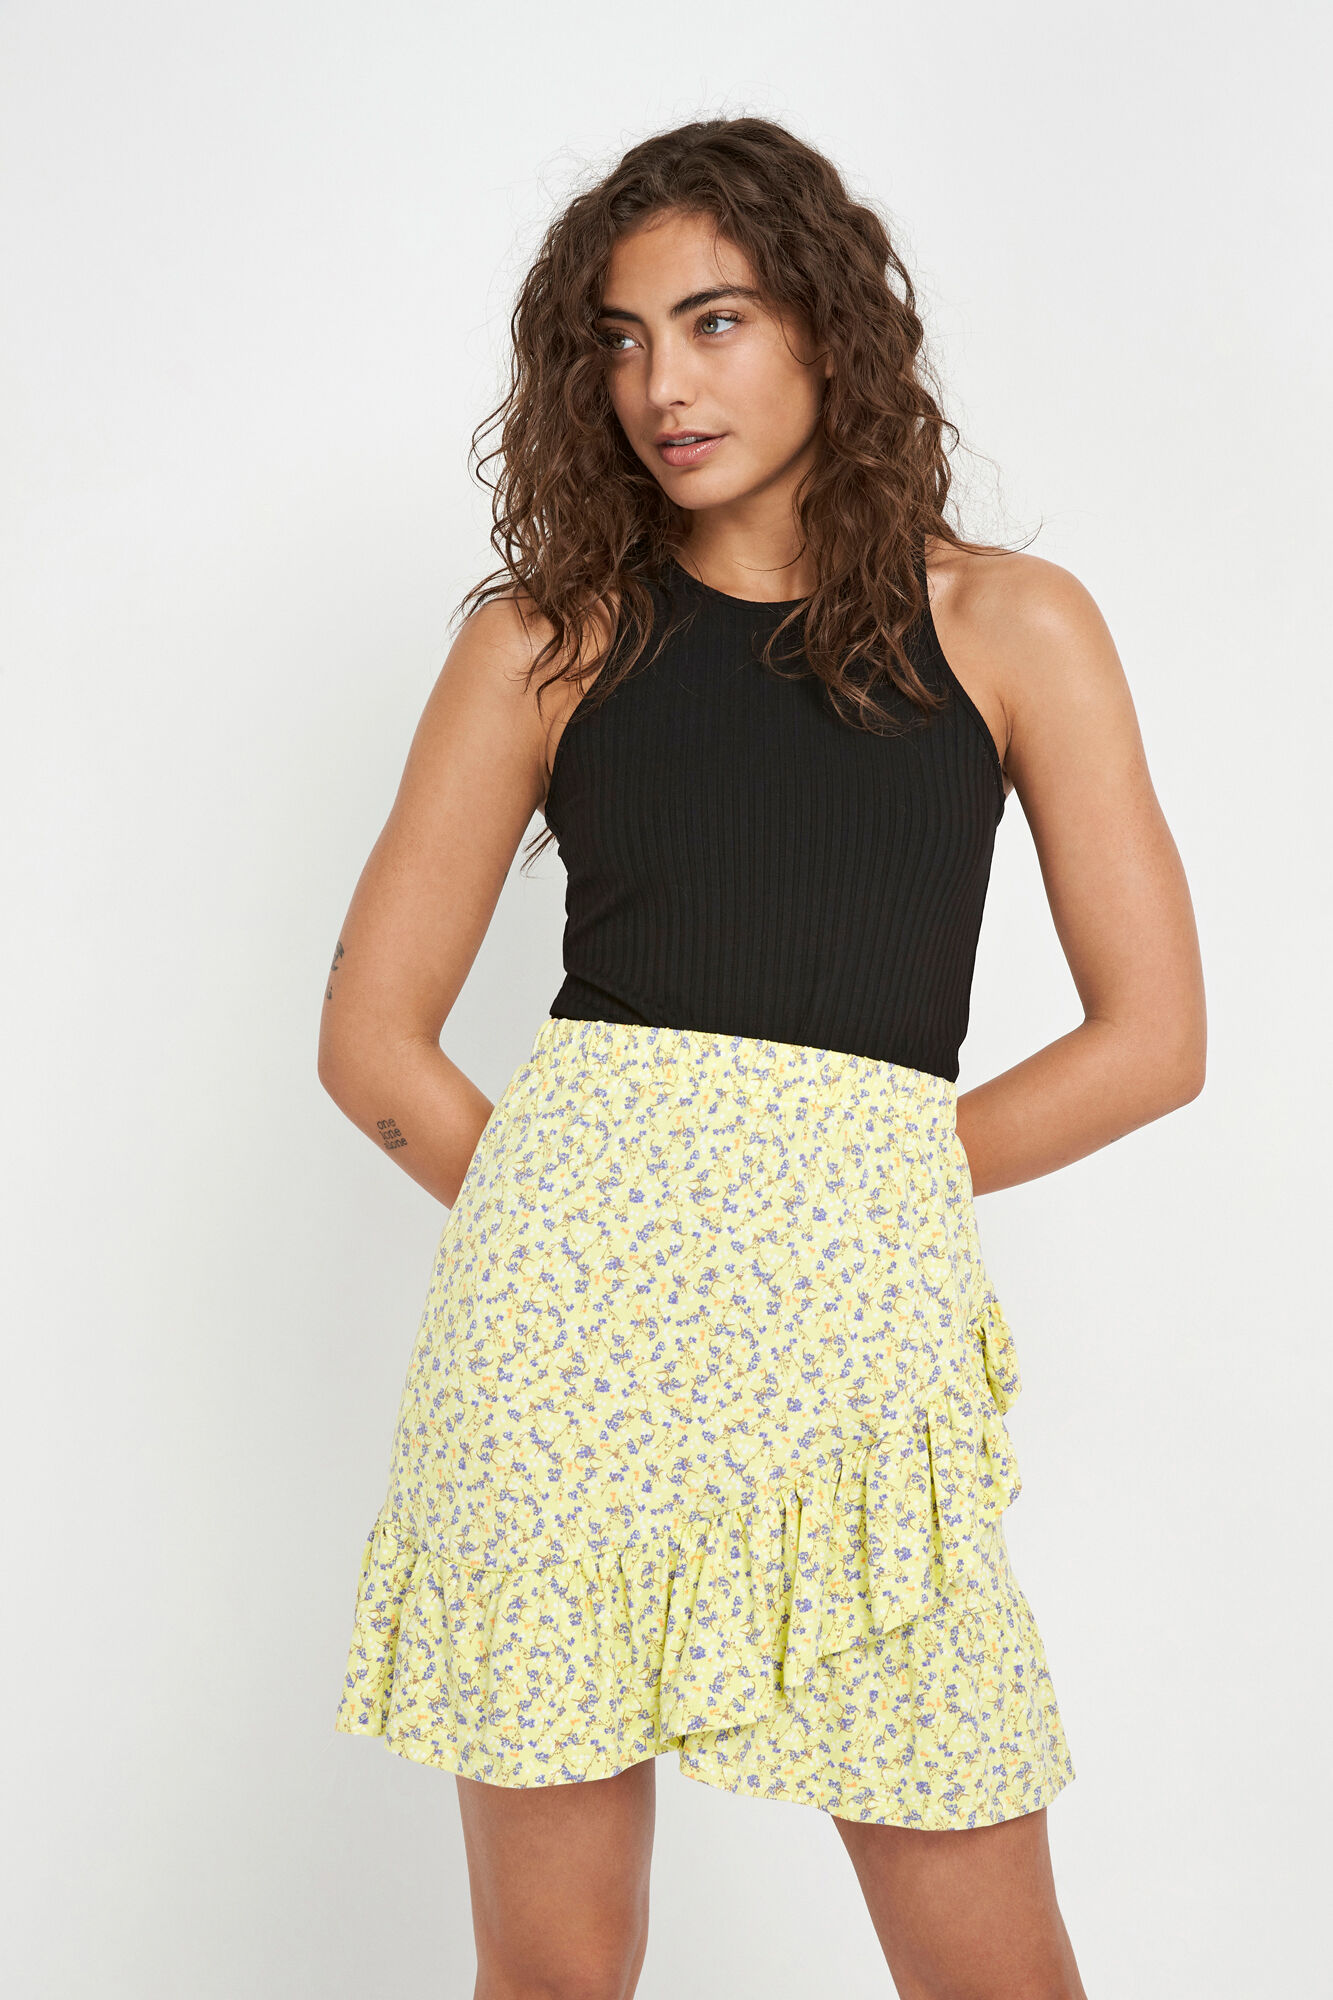 ENLIZARD SKIRT AOP 5329